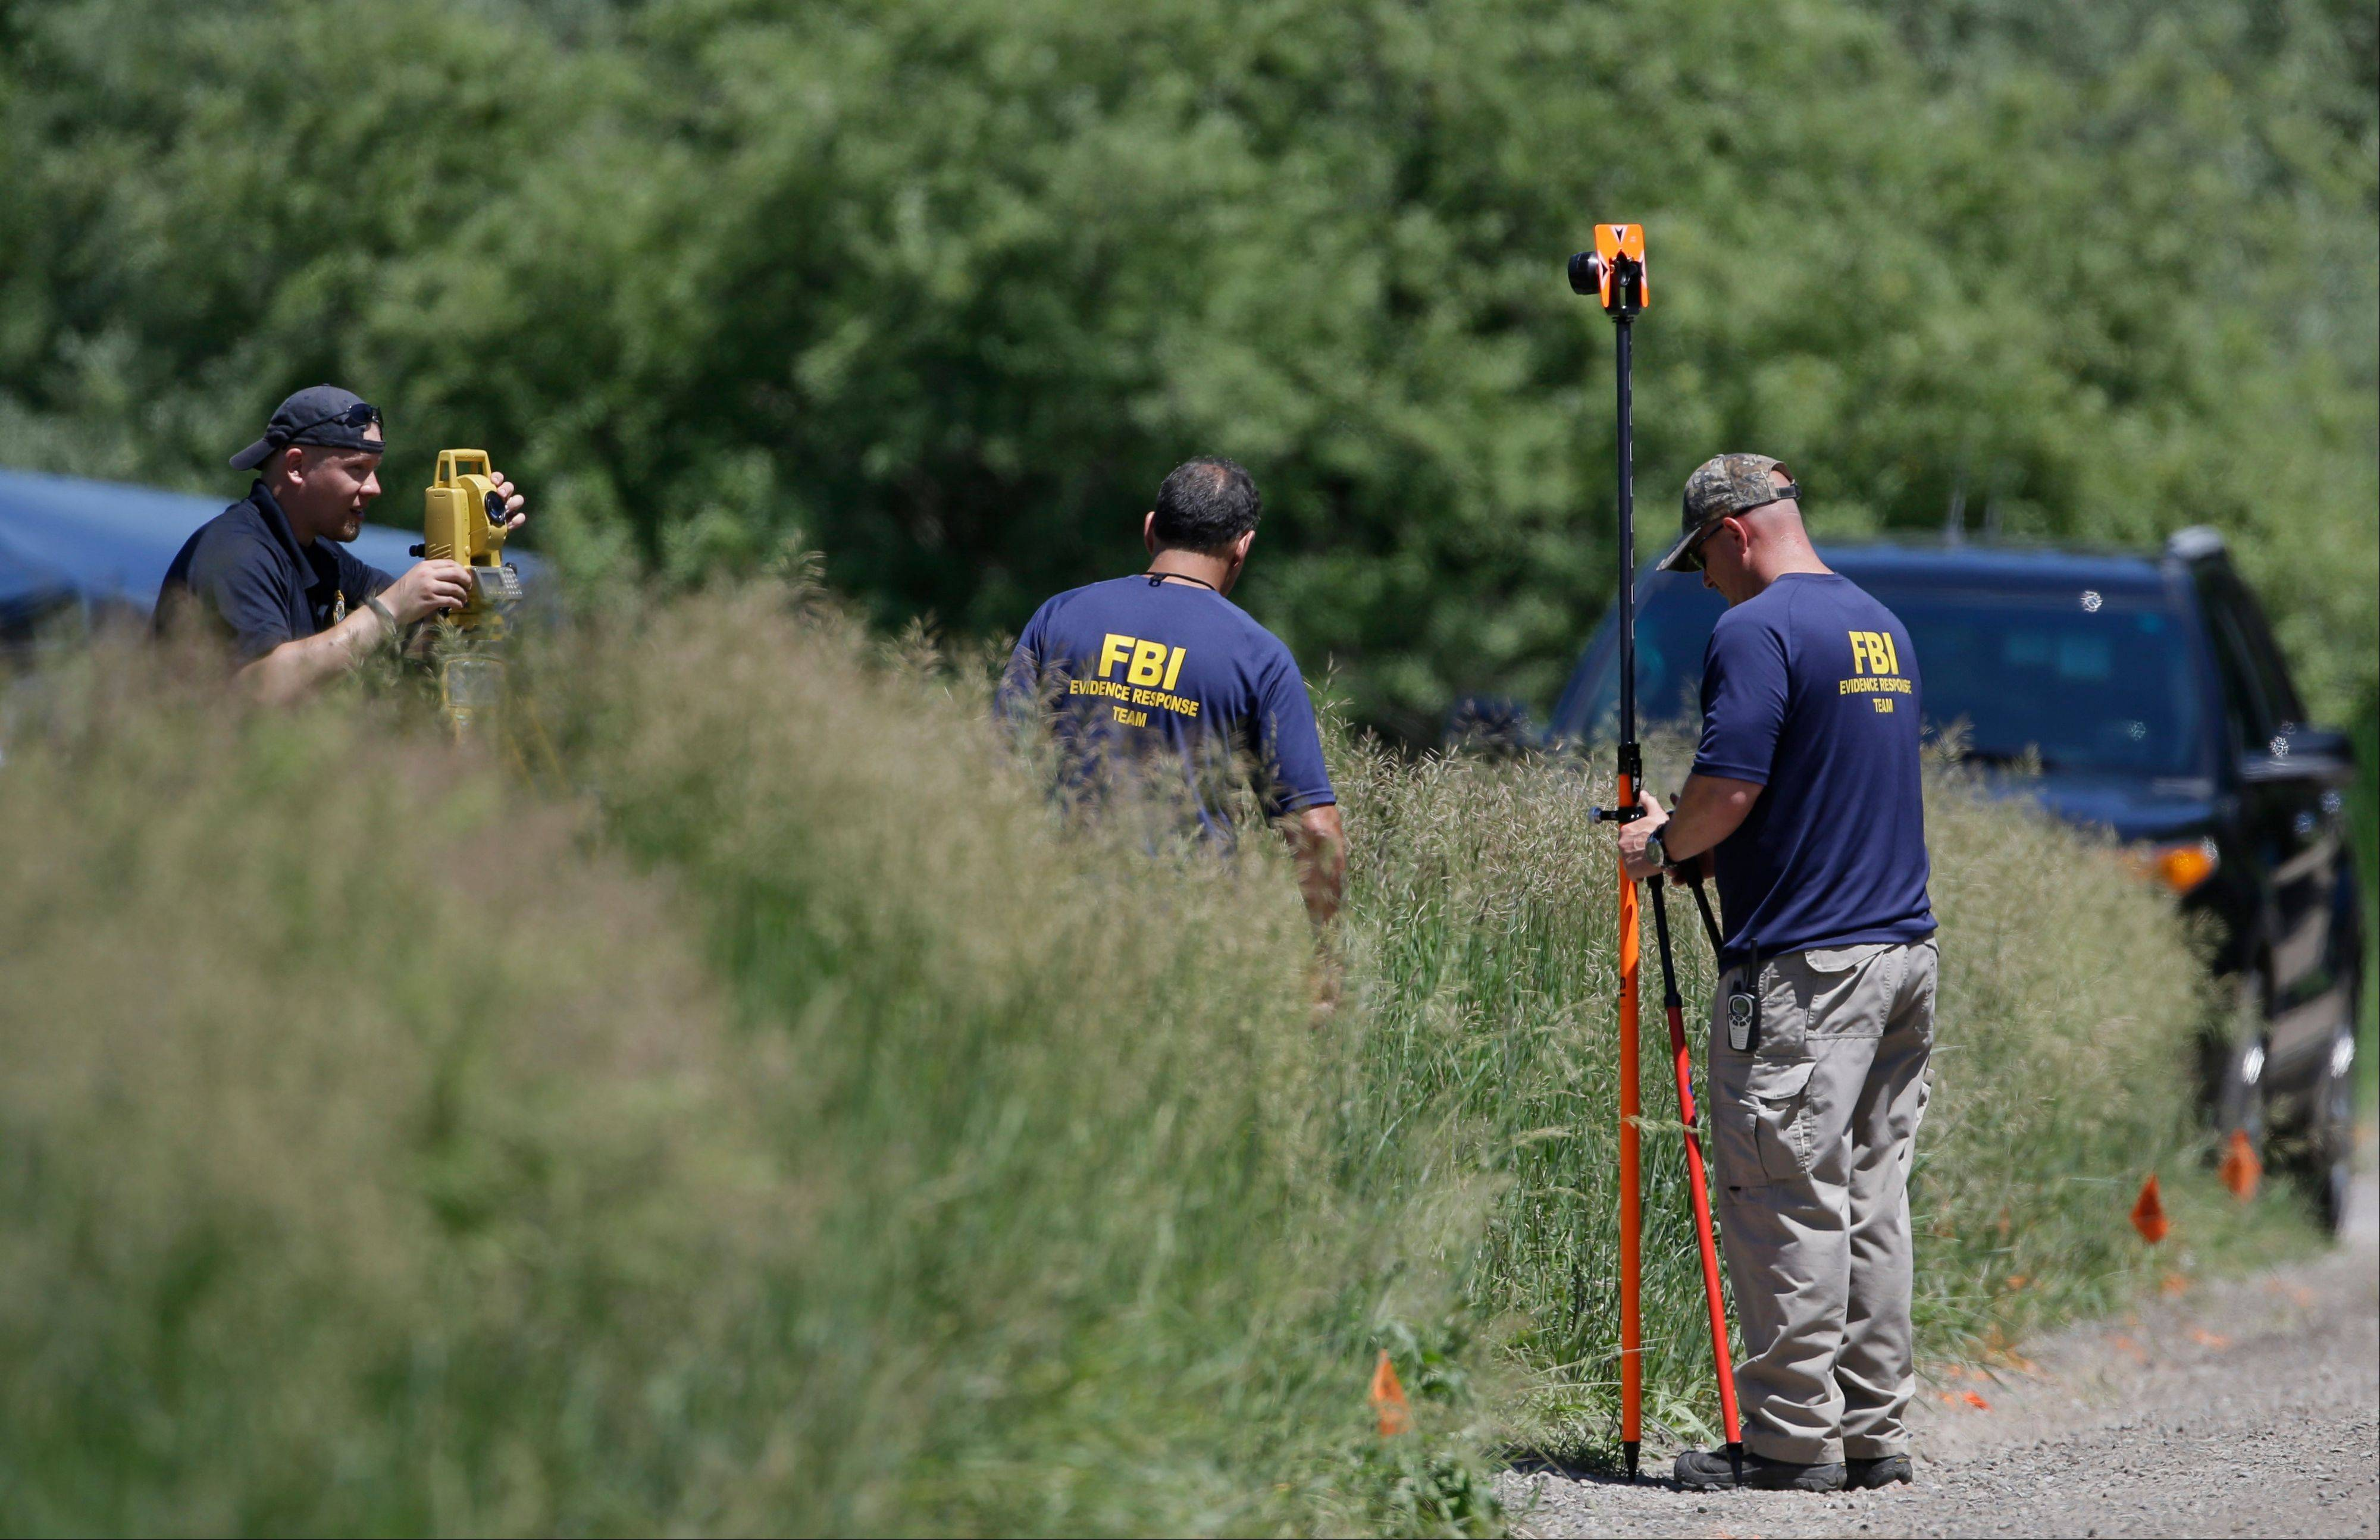 Members of the FBI Evidence Response Team survey an area in Oakland Township, Mich., Monday, June 17, 2013 where officials search for the remains of Teamsters union president Jimmy Hoffa who disappeared from a Detroit-area restaurant in 1975. The search follows claims made in February by reputed Mafia captain Tony Zerilli, who told Detroit TV station WDIV that he knew where Hoffa was buried.